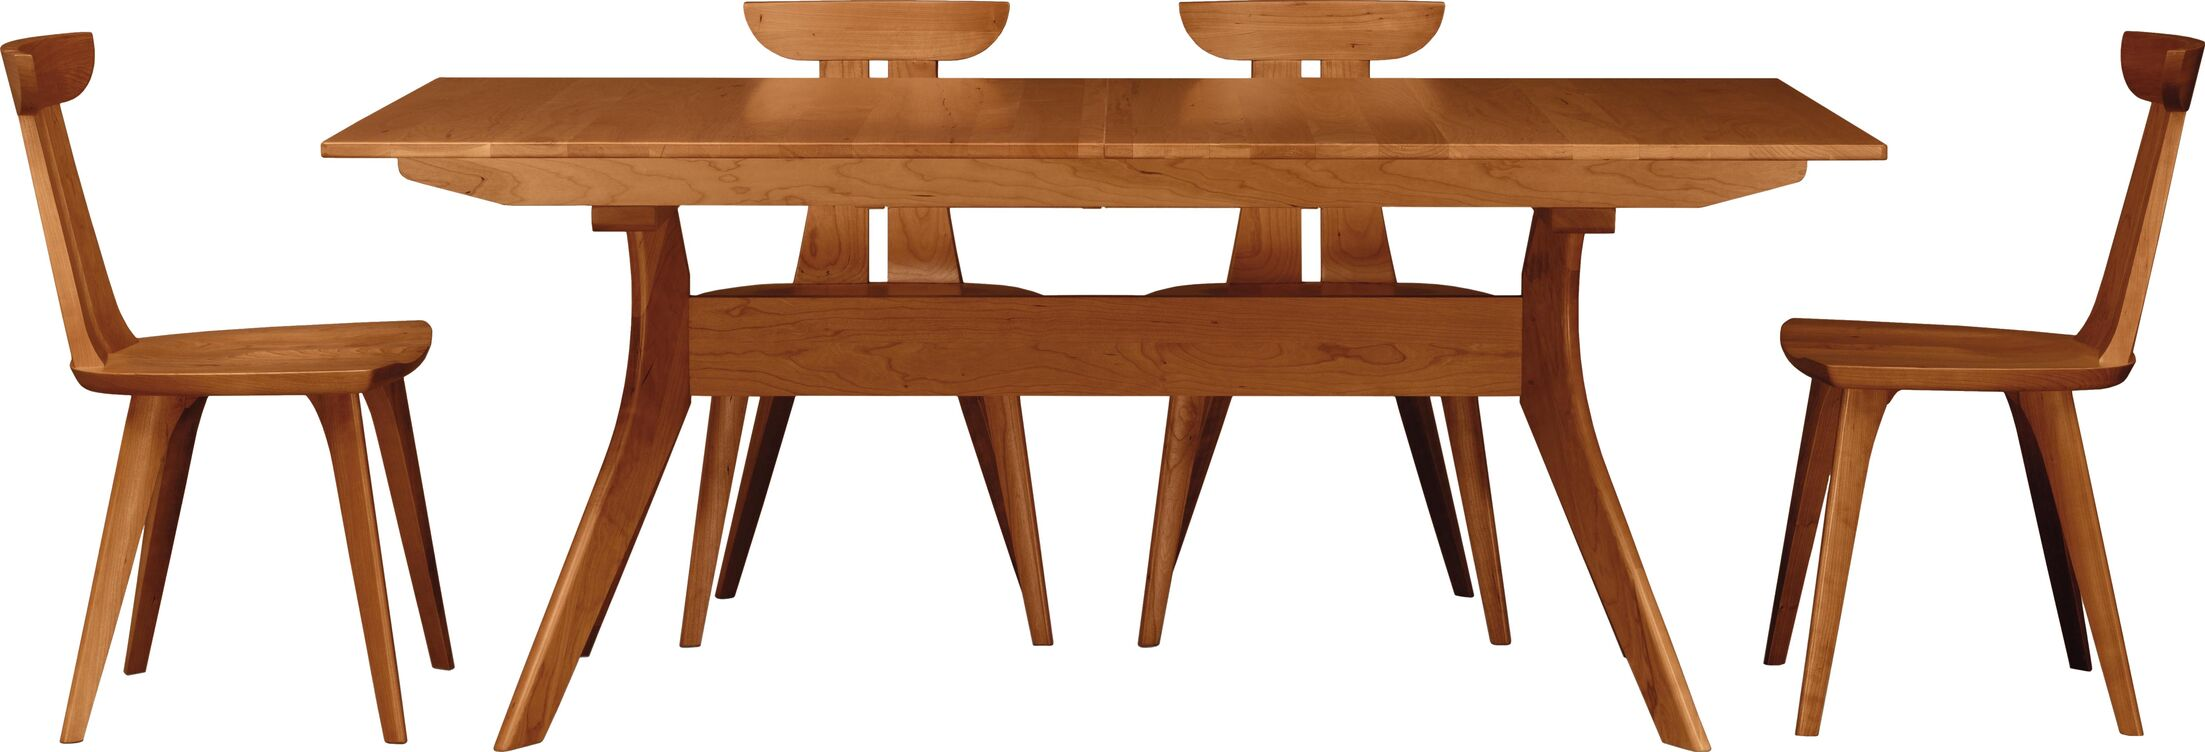 Audrey Extendable Dining Table Finish: Cognac Cherry, Size: 30